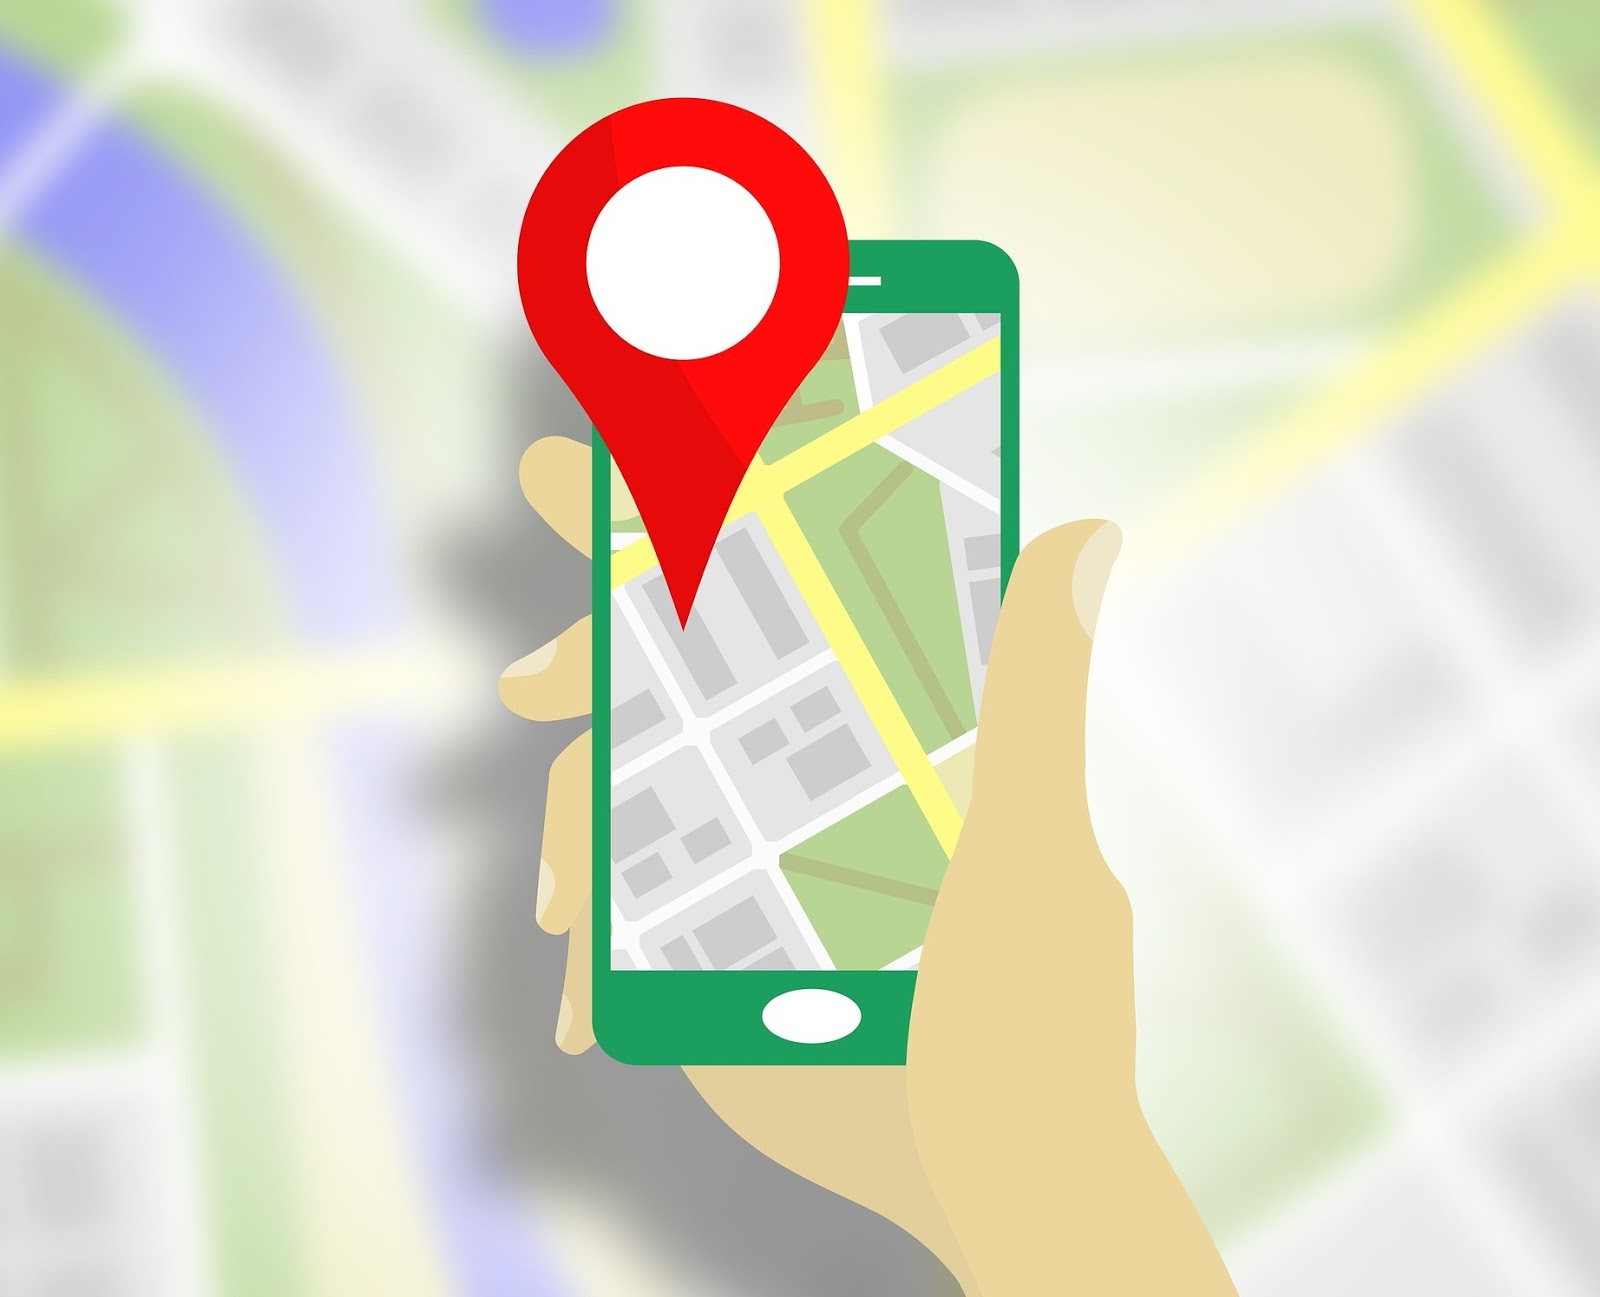 Part 1: How to Track a Mobile Number